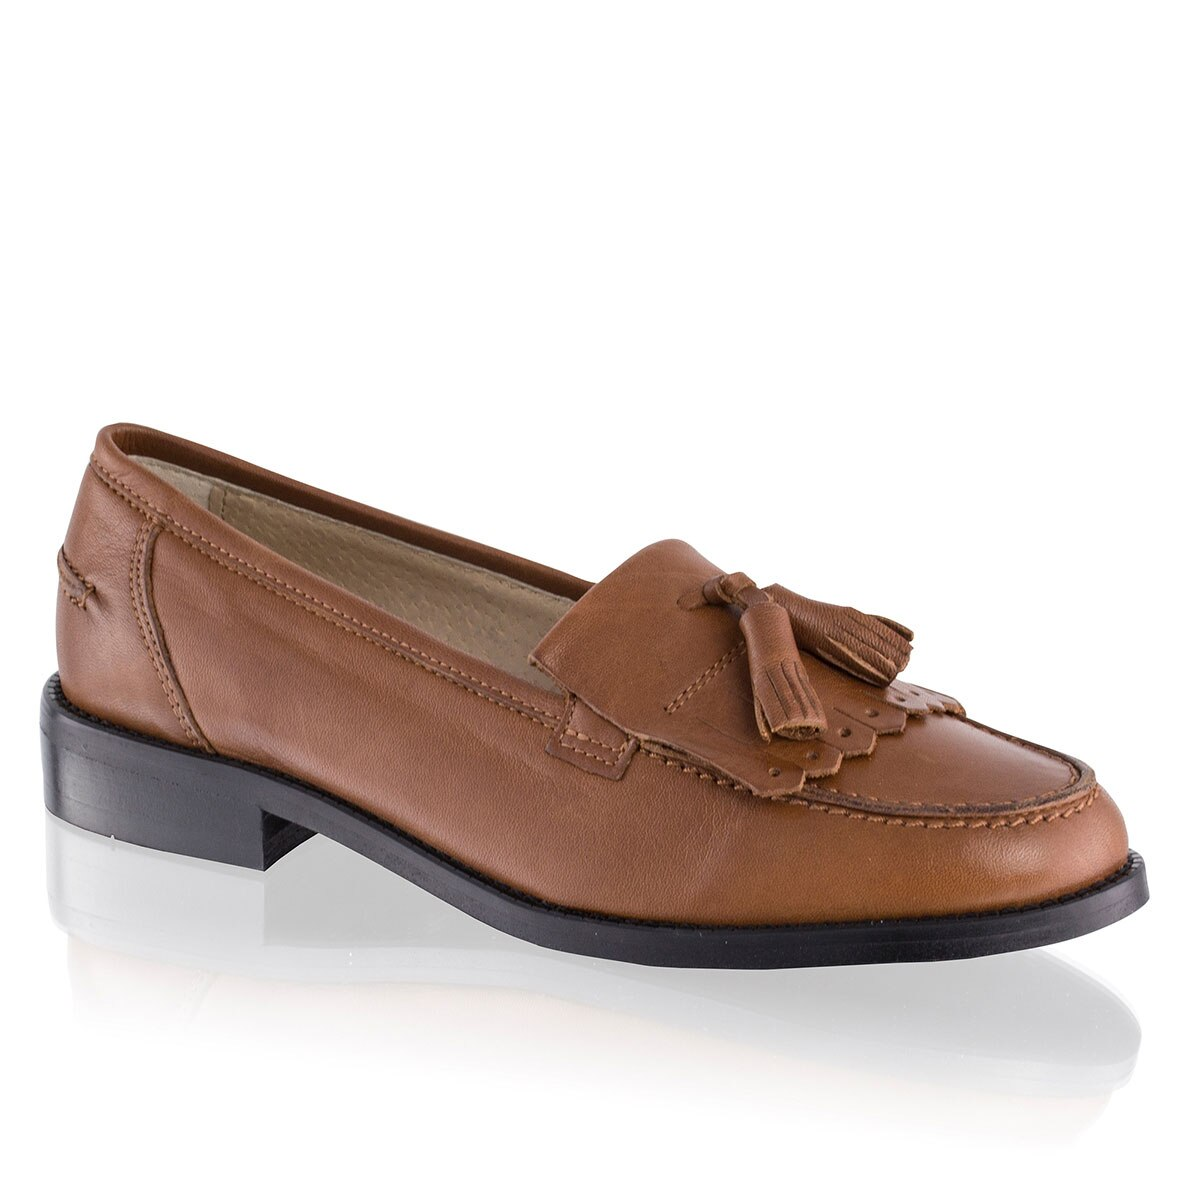 Russell and Bromley ALEXA Tassel Loafer